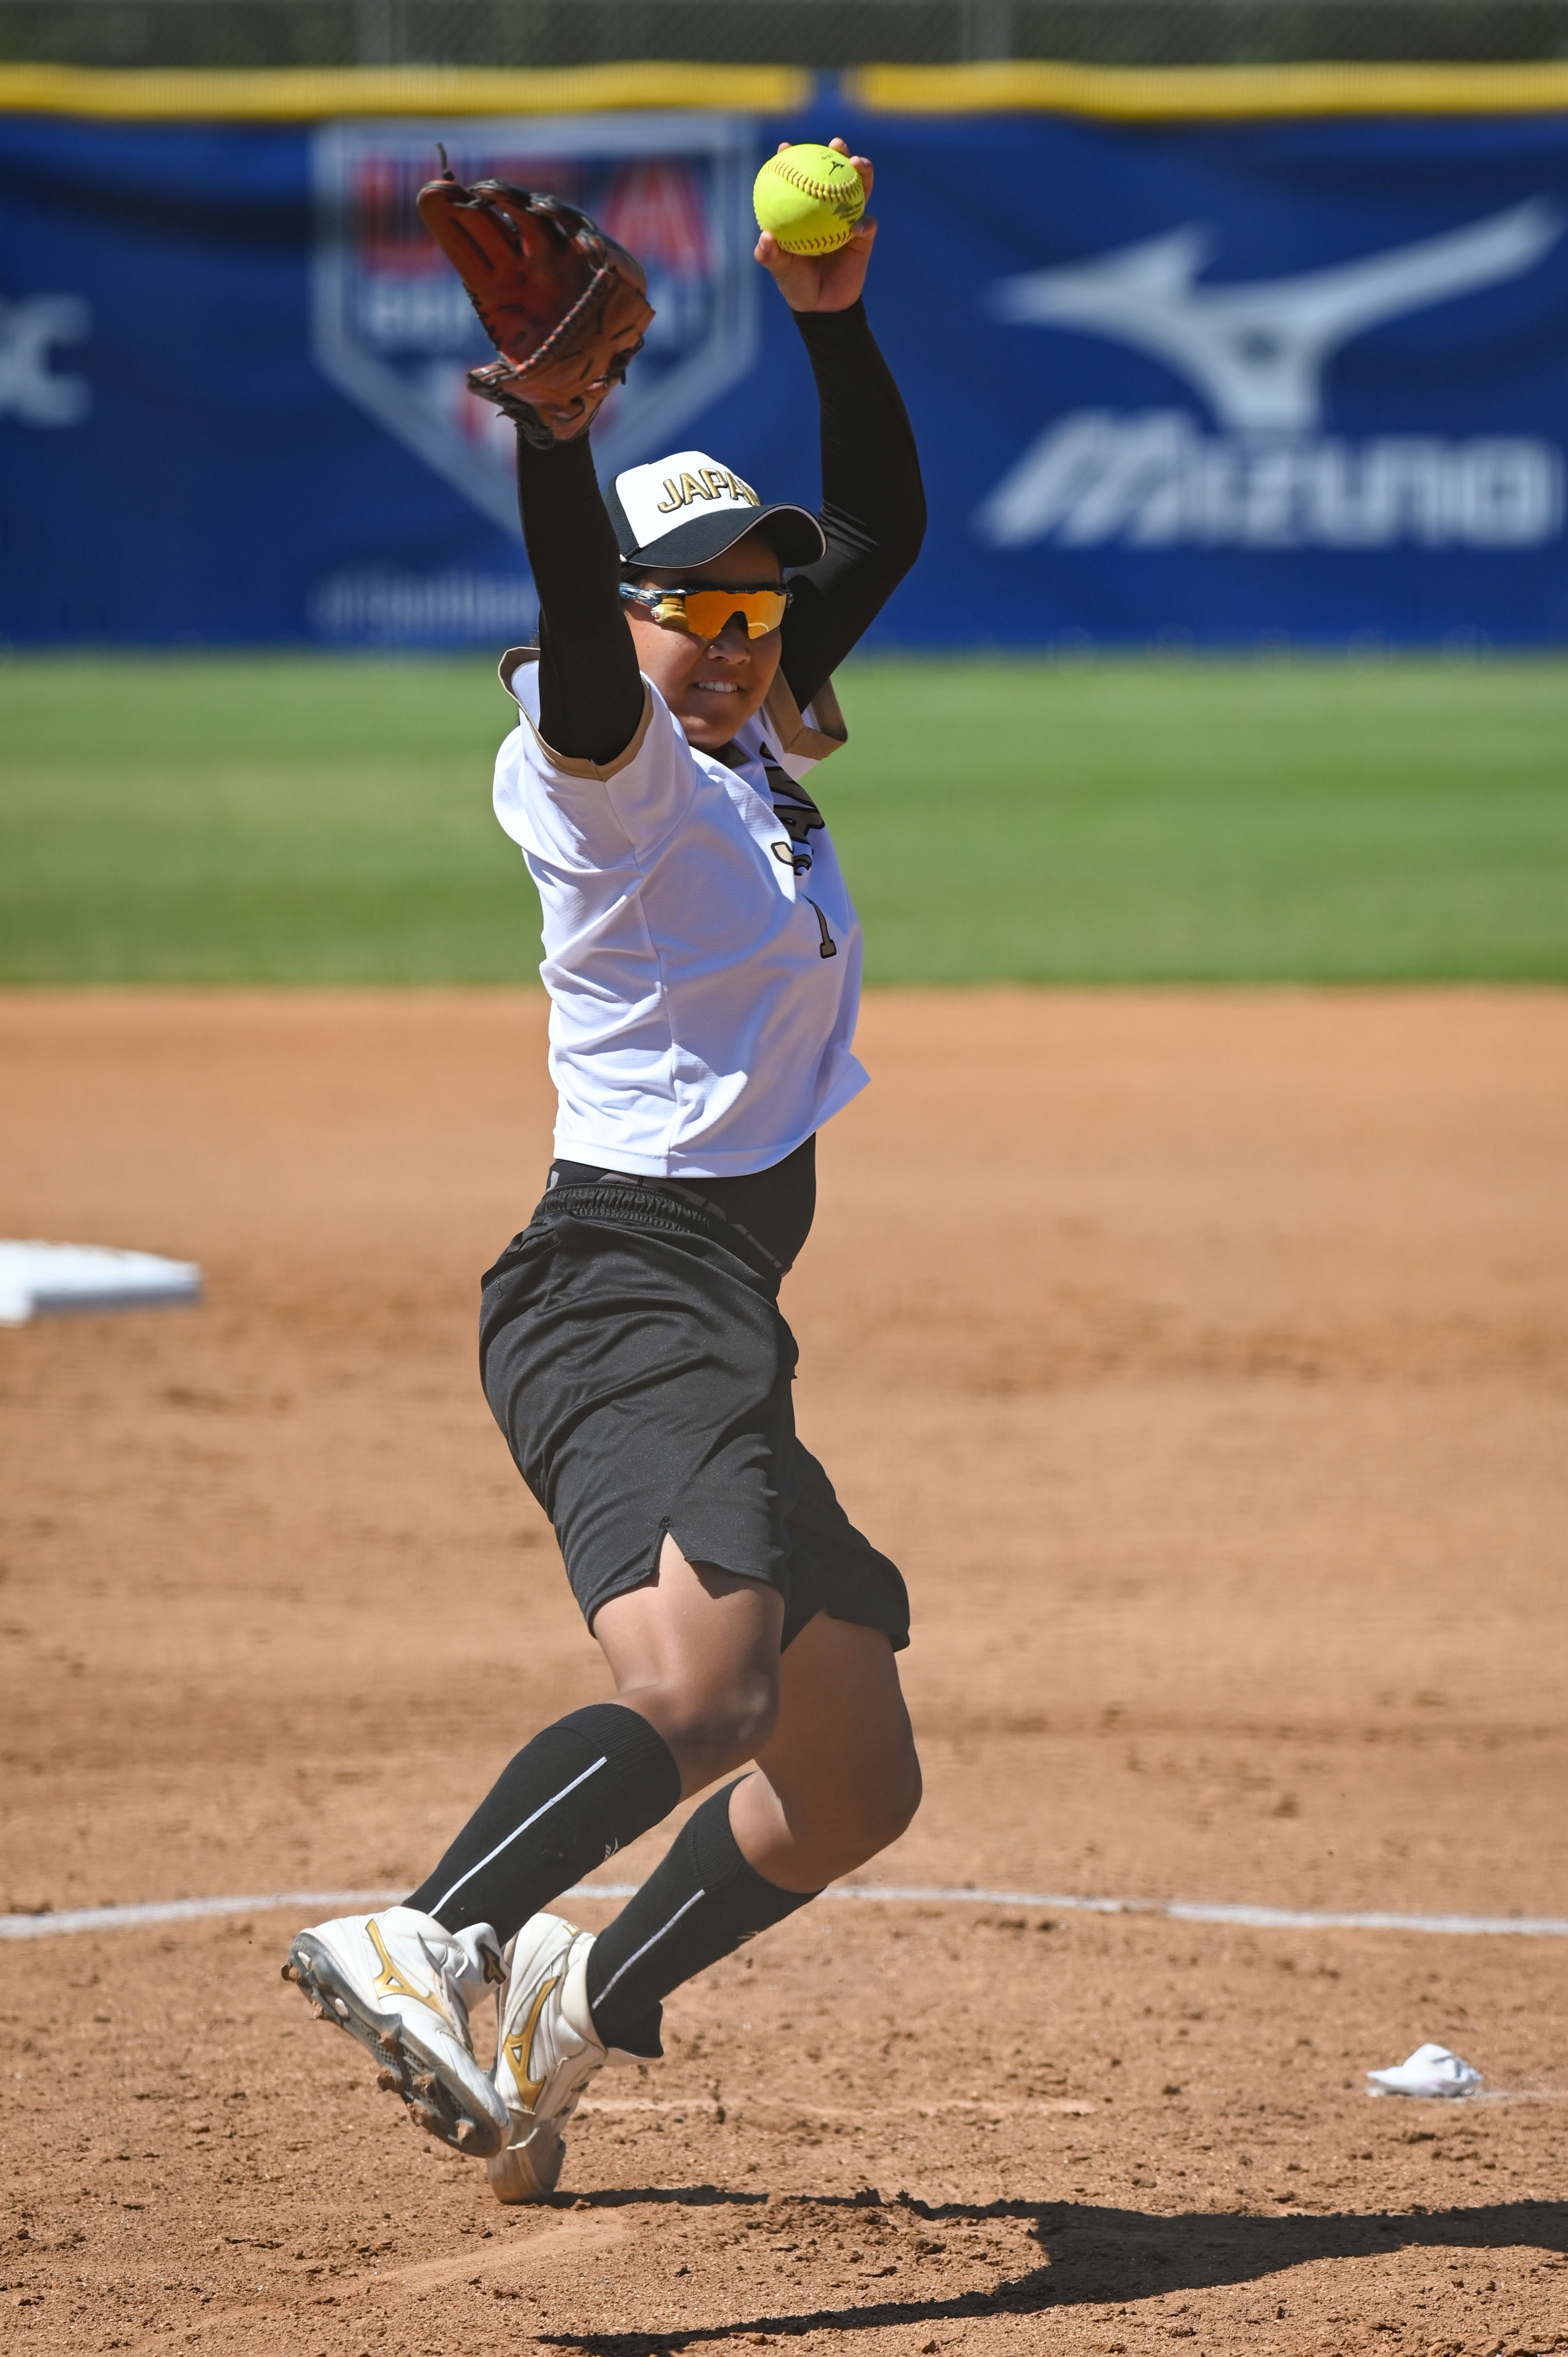 Maddy's Photos from 2019 WBSC U19 Women's Softball World Cup